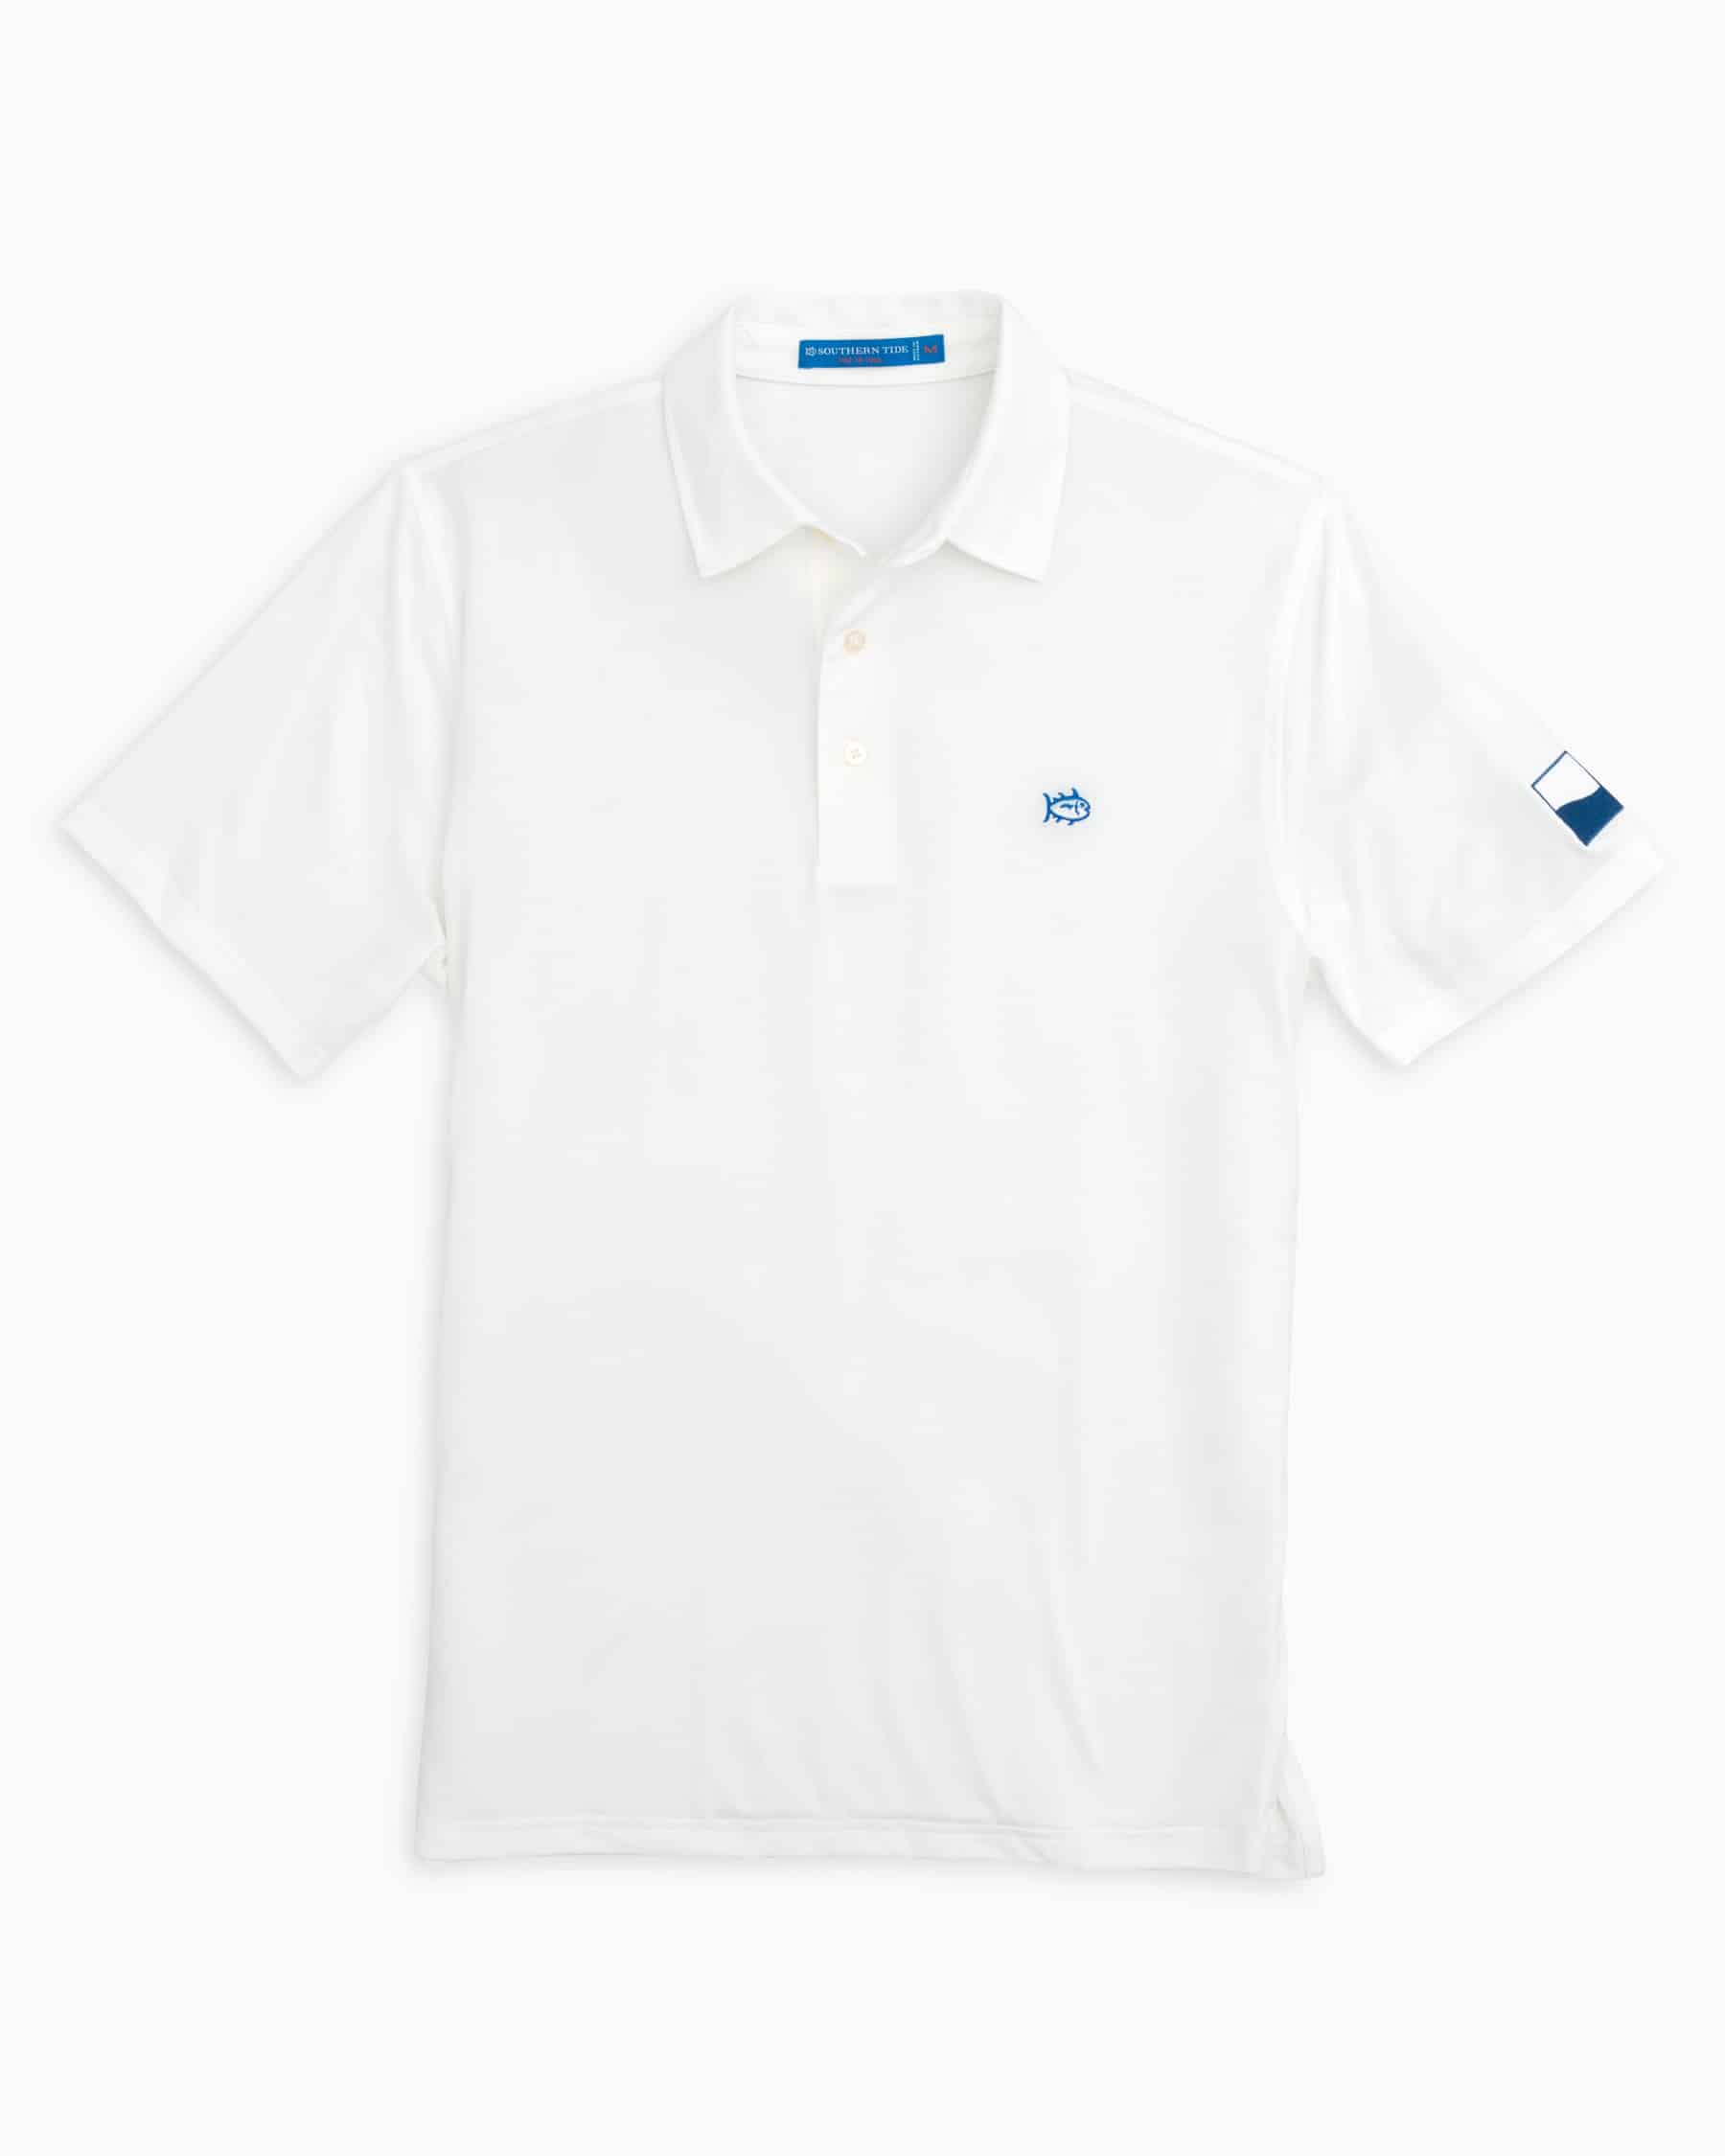 Southern Tides Beneath the Waves Polo